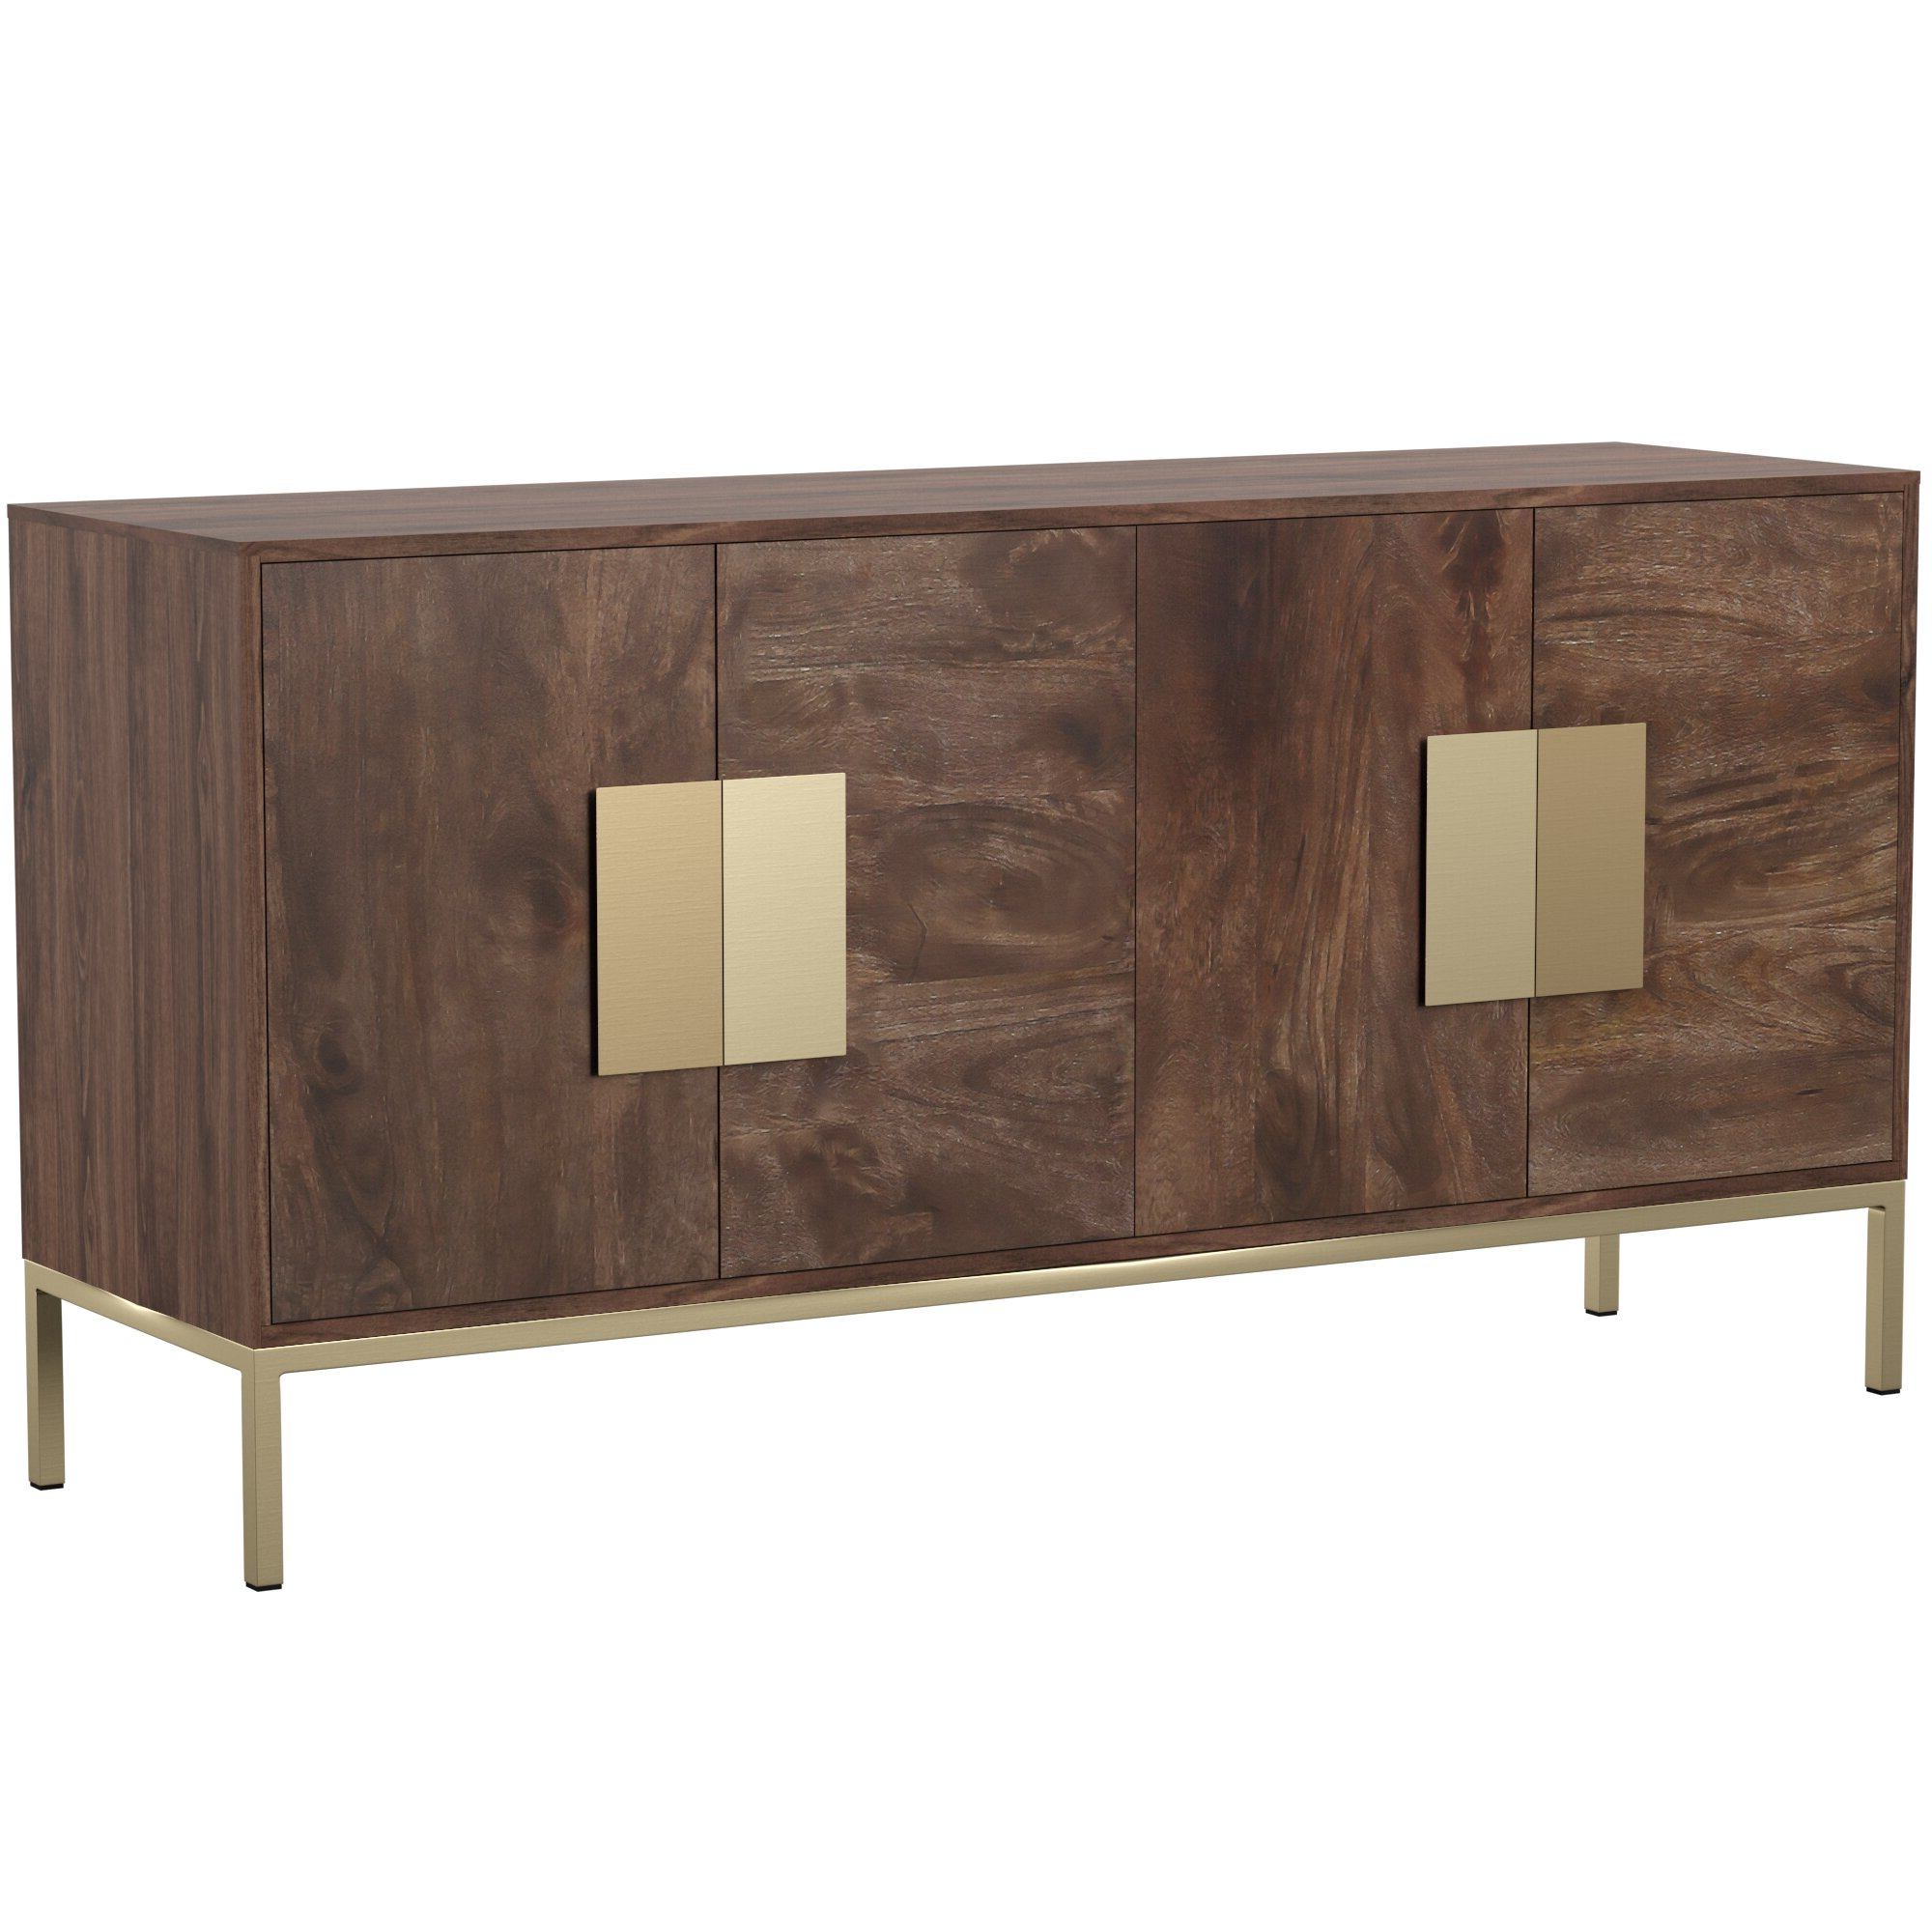 Kyte Sideboard With Most Current Cher Sideboards (View 12 of 20)